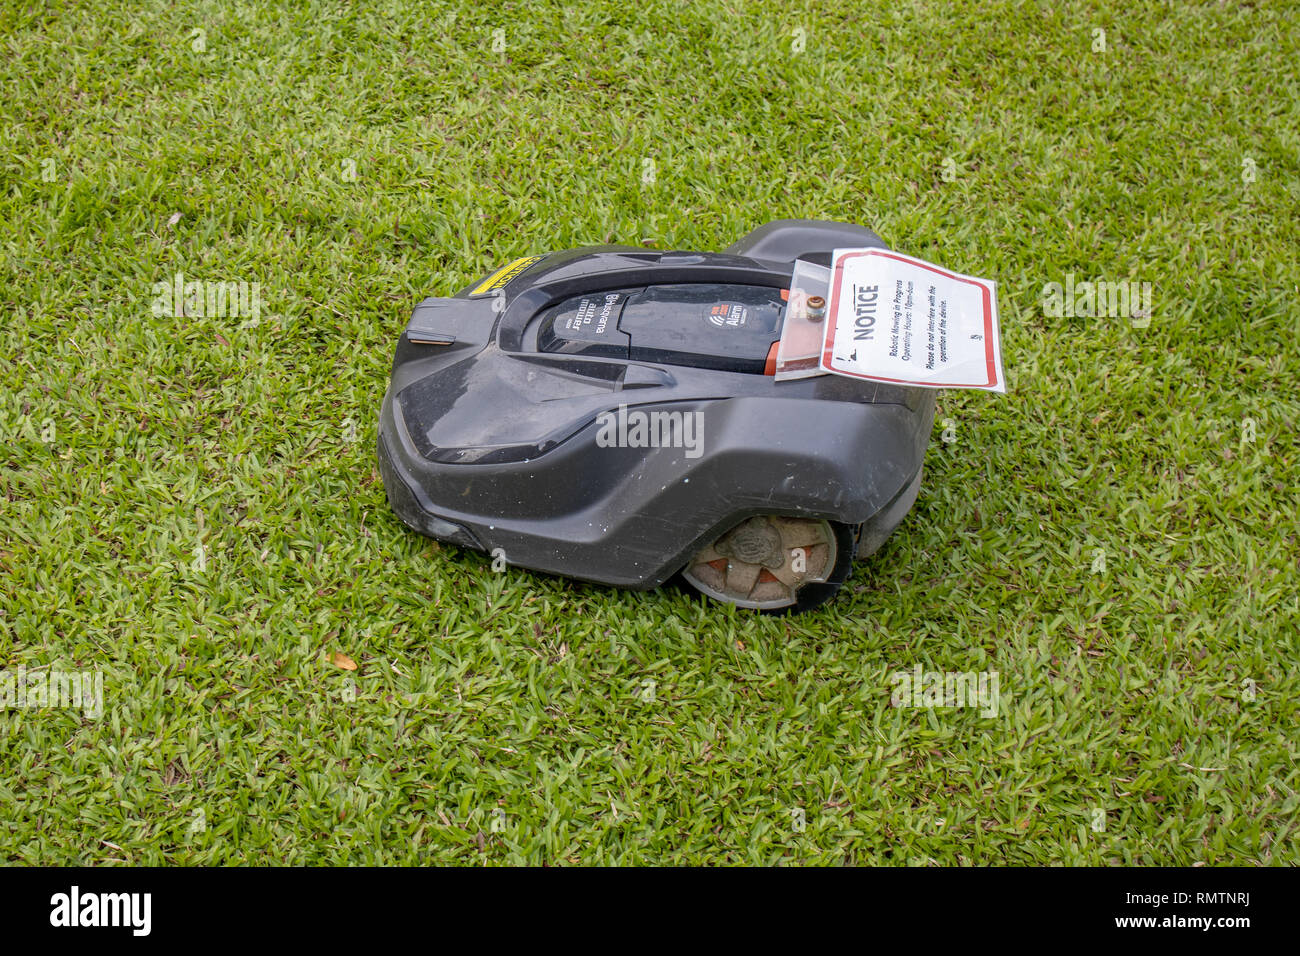 husqvarna robot lawn mower in a public park in Singapore - Stock Image